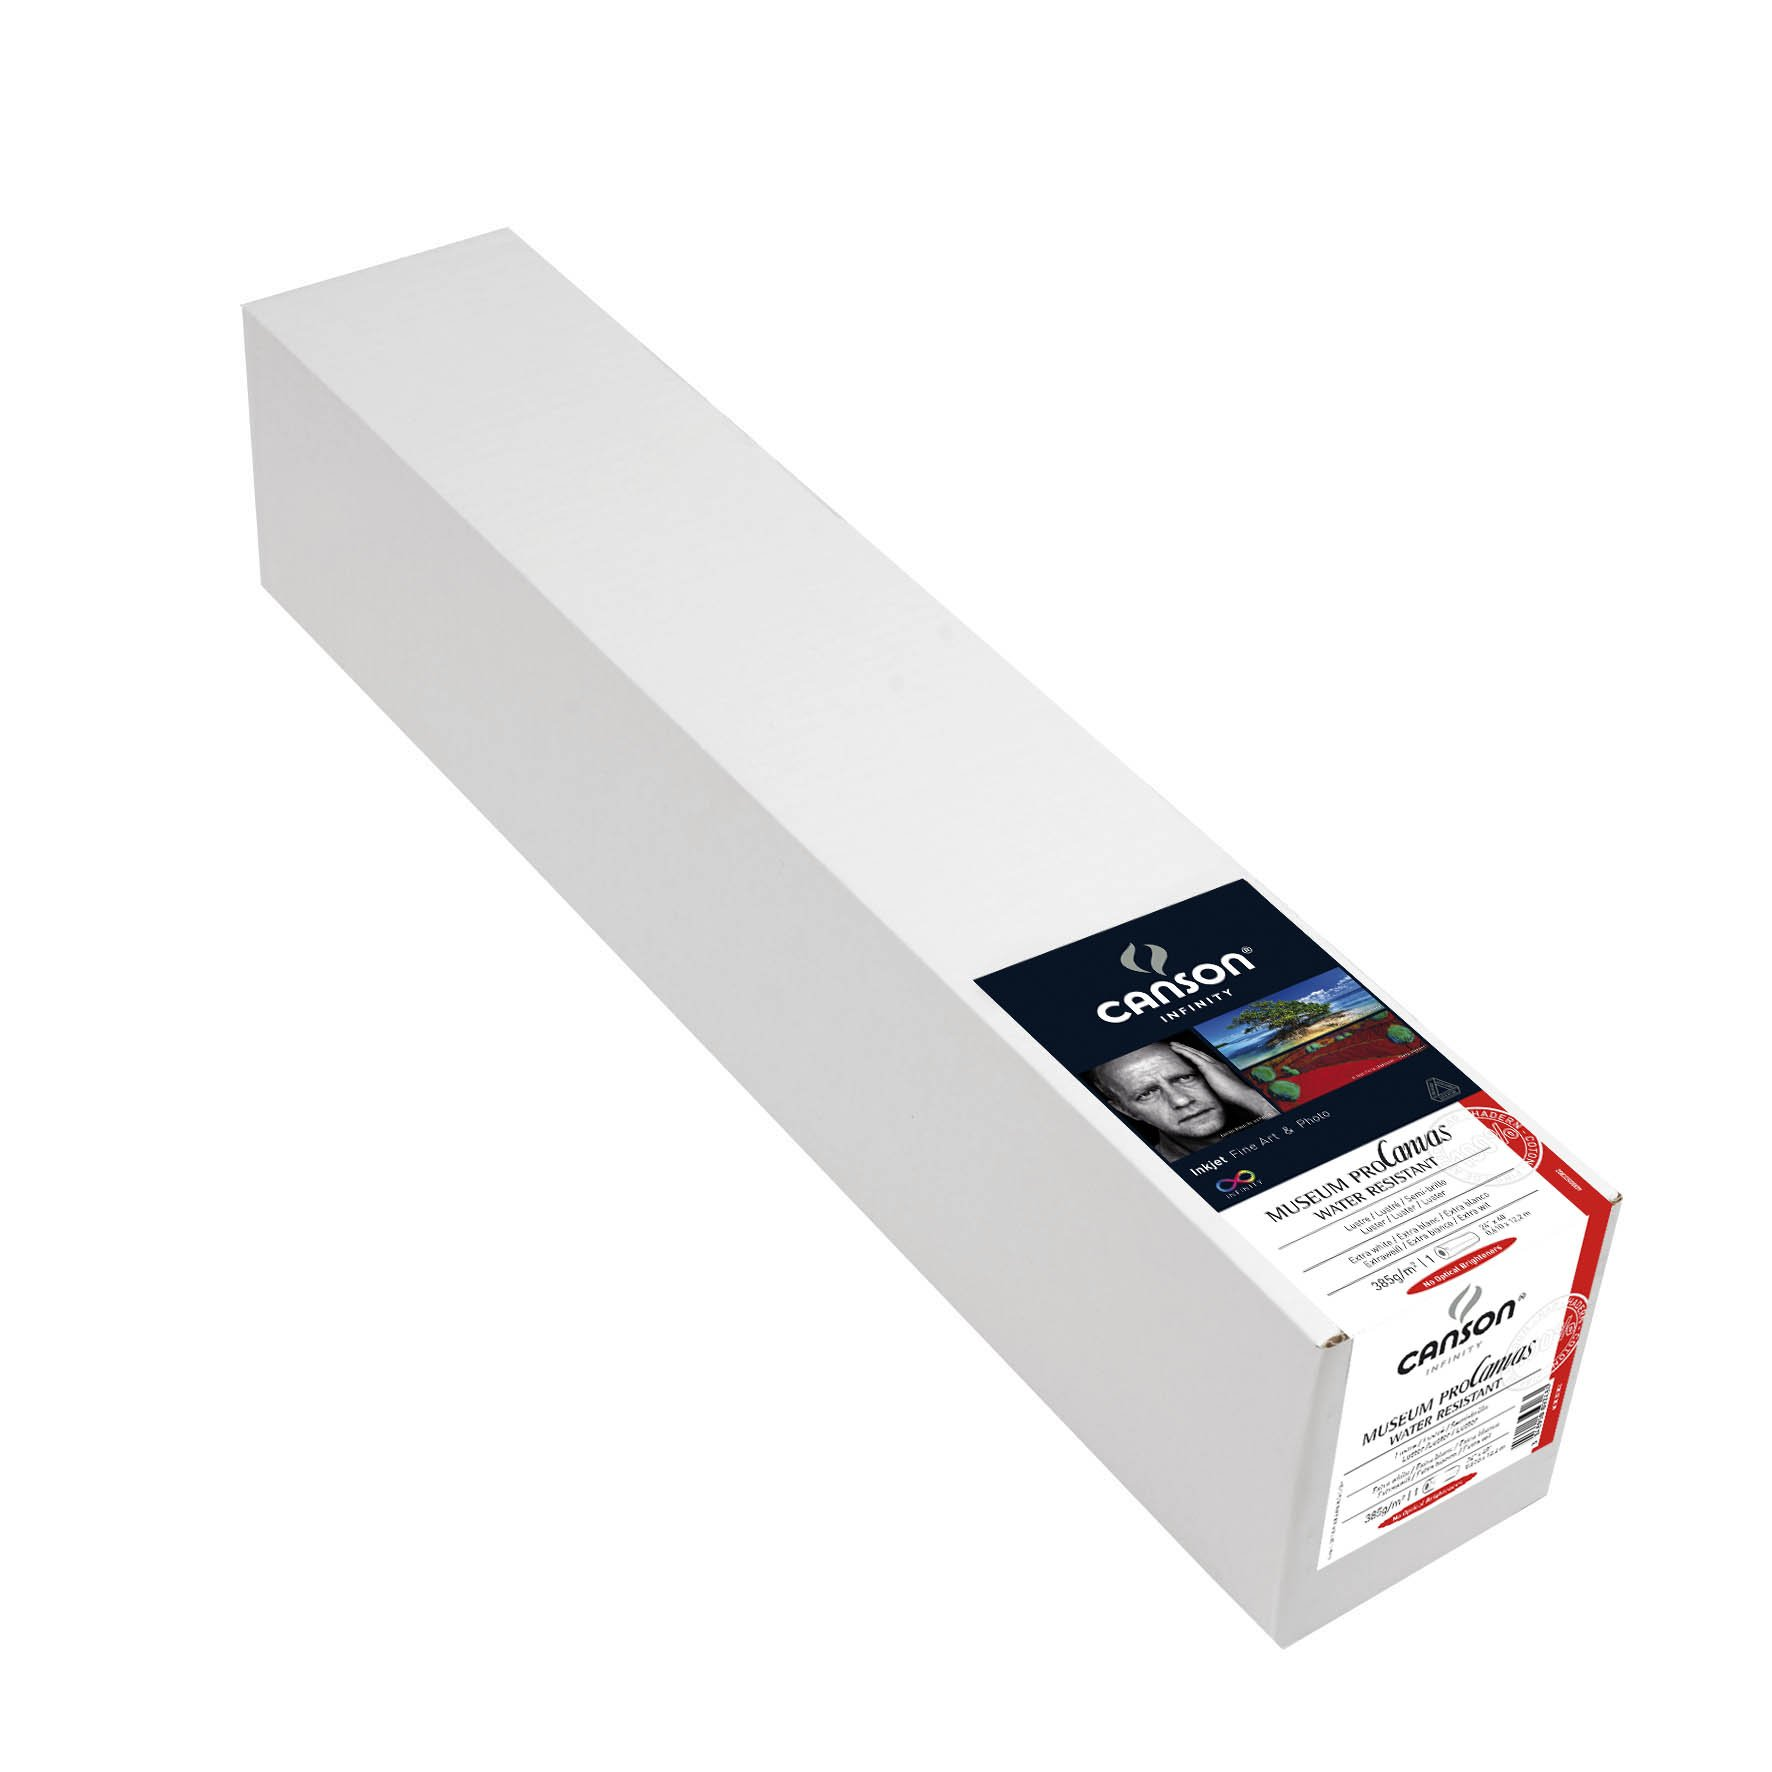 Canson Infinity Museum Pro Canvas Lustre, 24 Inch x 40 Foot Roll by Canson